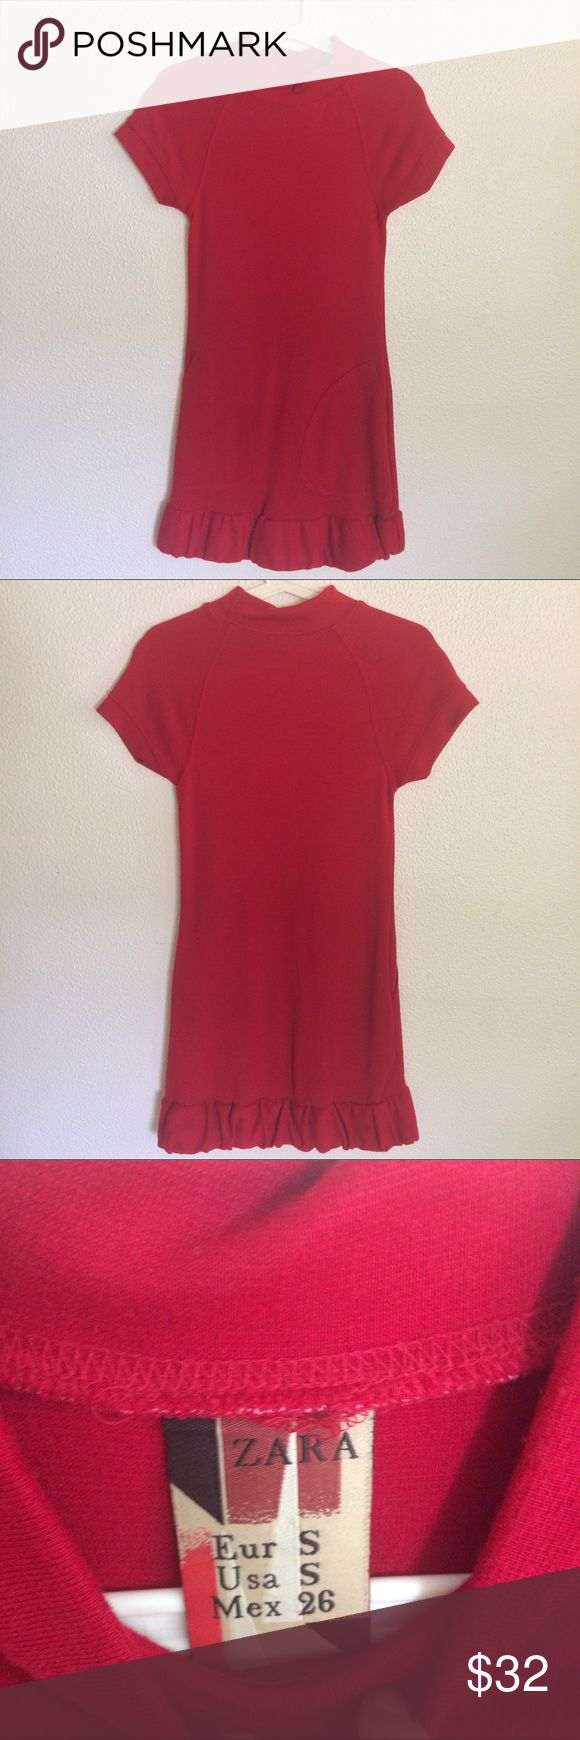 Zara red sweater dress with ruffle hem & pockets Super cute and perfect for fall/winter - just add tights and your favorite boots! In excellent condition with no flaws. Size small. Reasonable offers considered and bundles encouraged! 🙌🏻 Zara Dresses